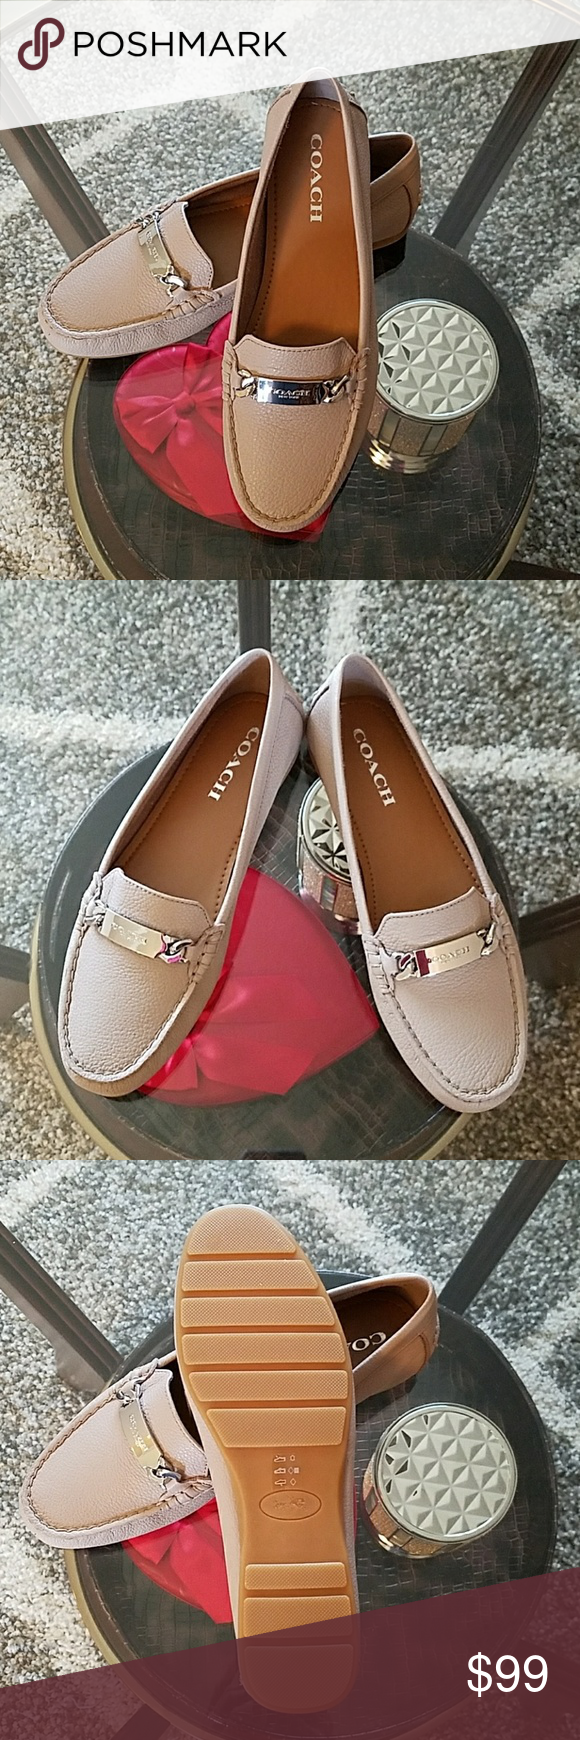 94d061a17f9 ... clearance new coach loafers beautiful coach loafers. gorgeous color. just  perfect for spring and